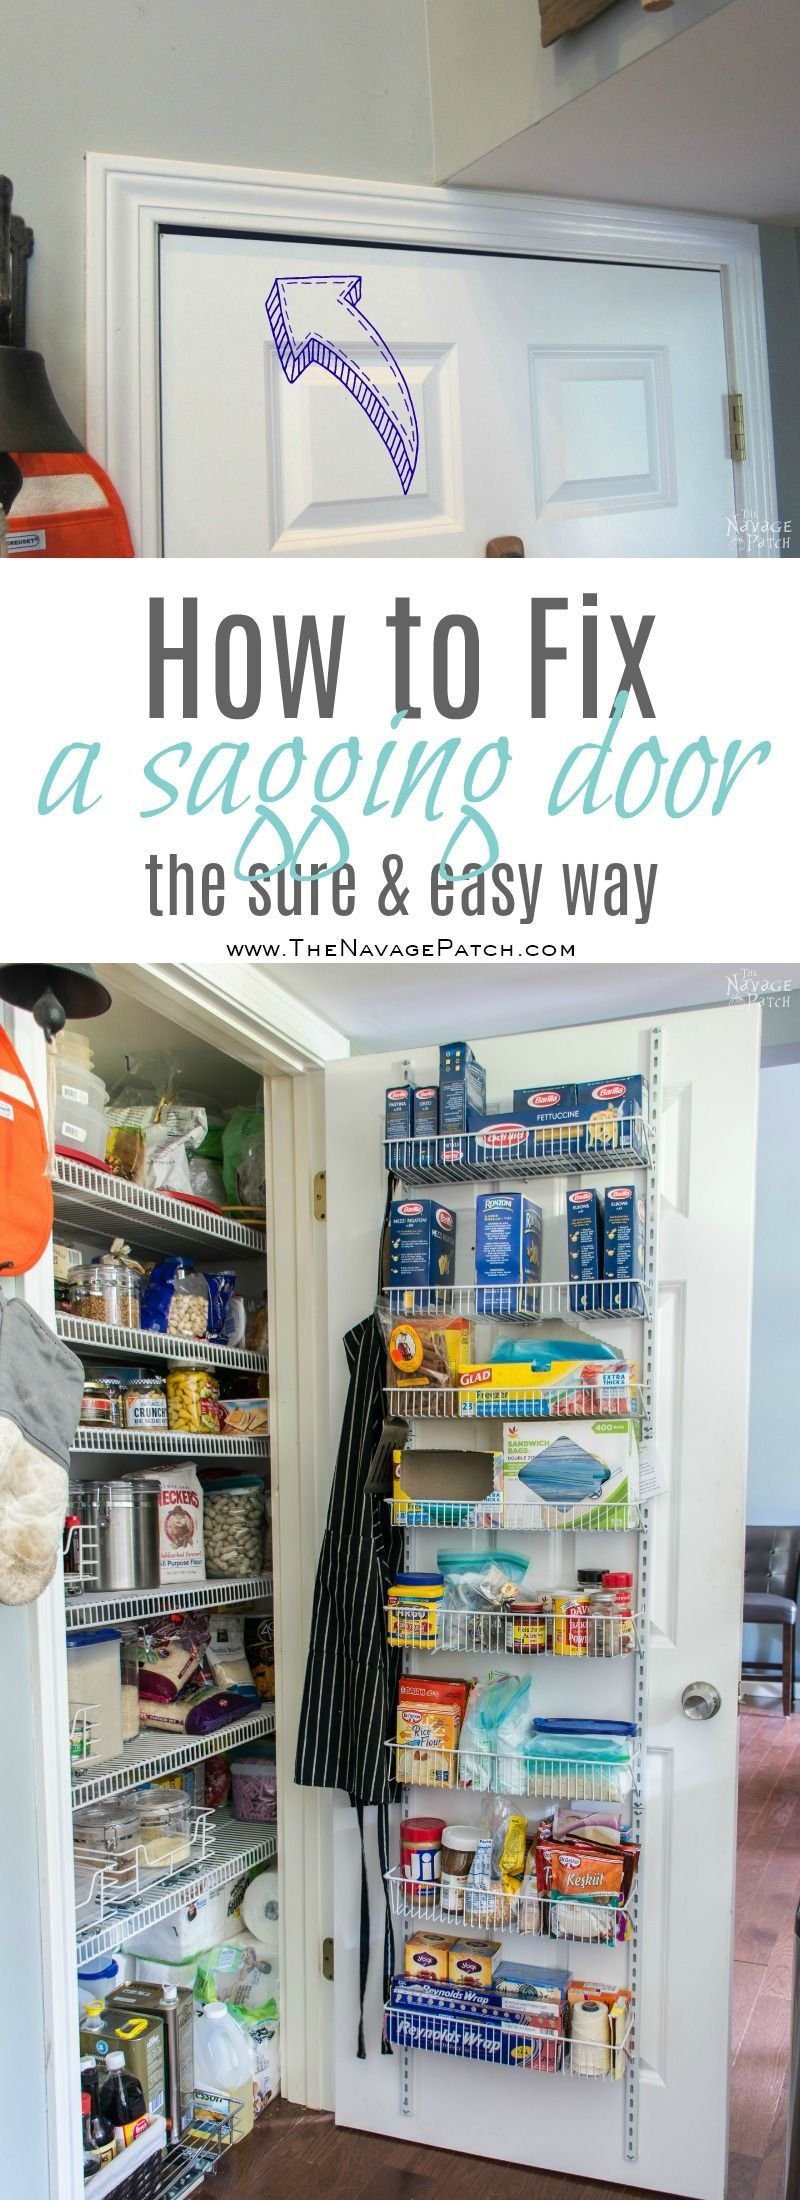 Pantry Makeover And Organization Ideas The Navage Patch Small Pantry Organization Diy Pantry Organization Kitchen Organization Diy